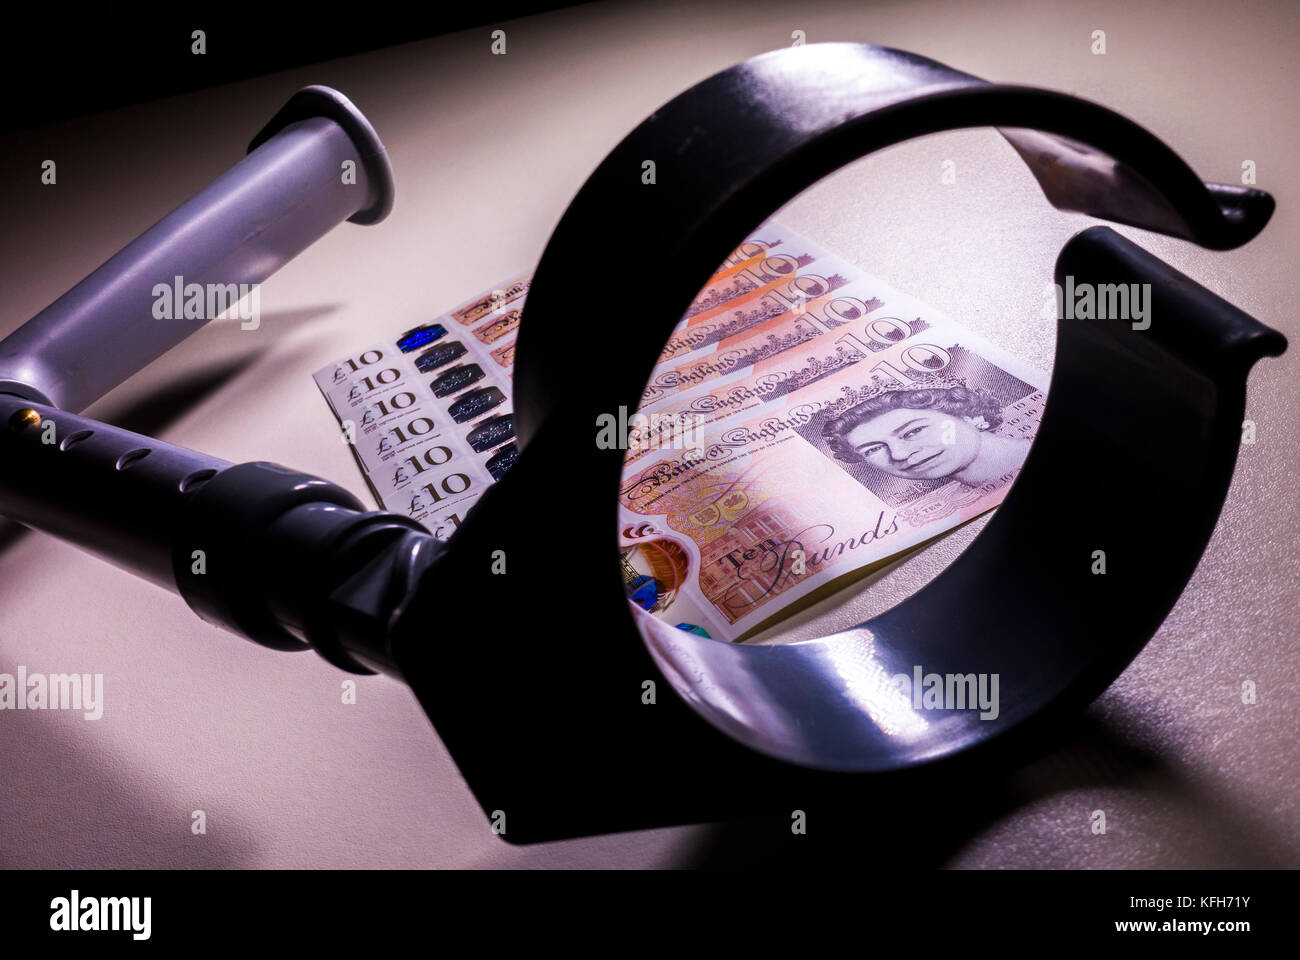 Crutch and new polymer sterling £10 ten pound notes. Concept of link between incapacity and UK pounds, such - Stock Image